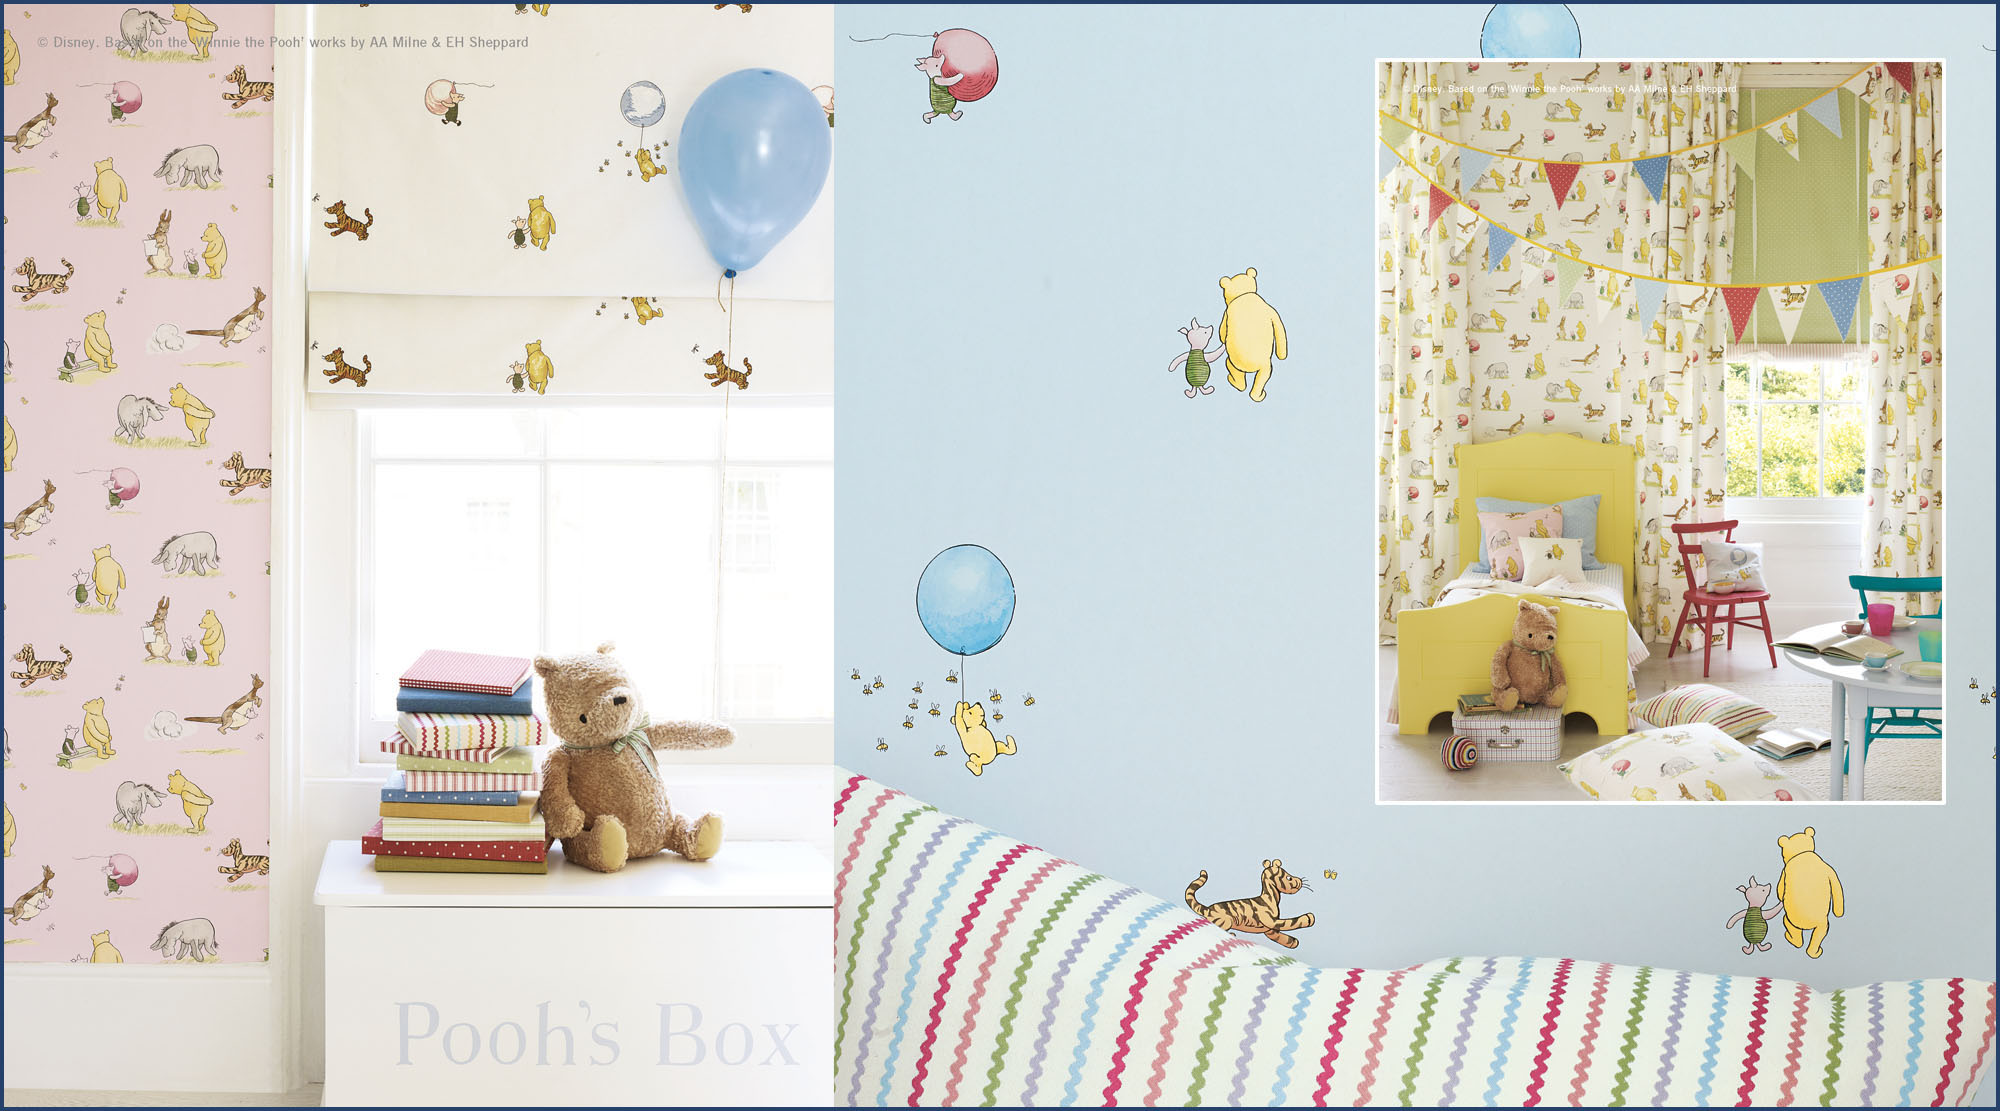 Child's bedroom with 'Pooh Bear' fabrics and wallpapers